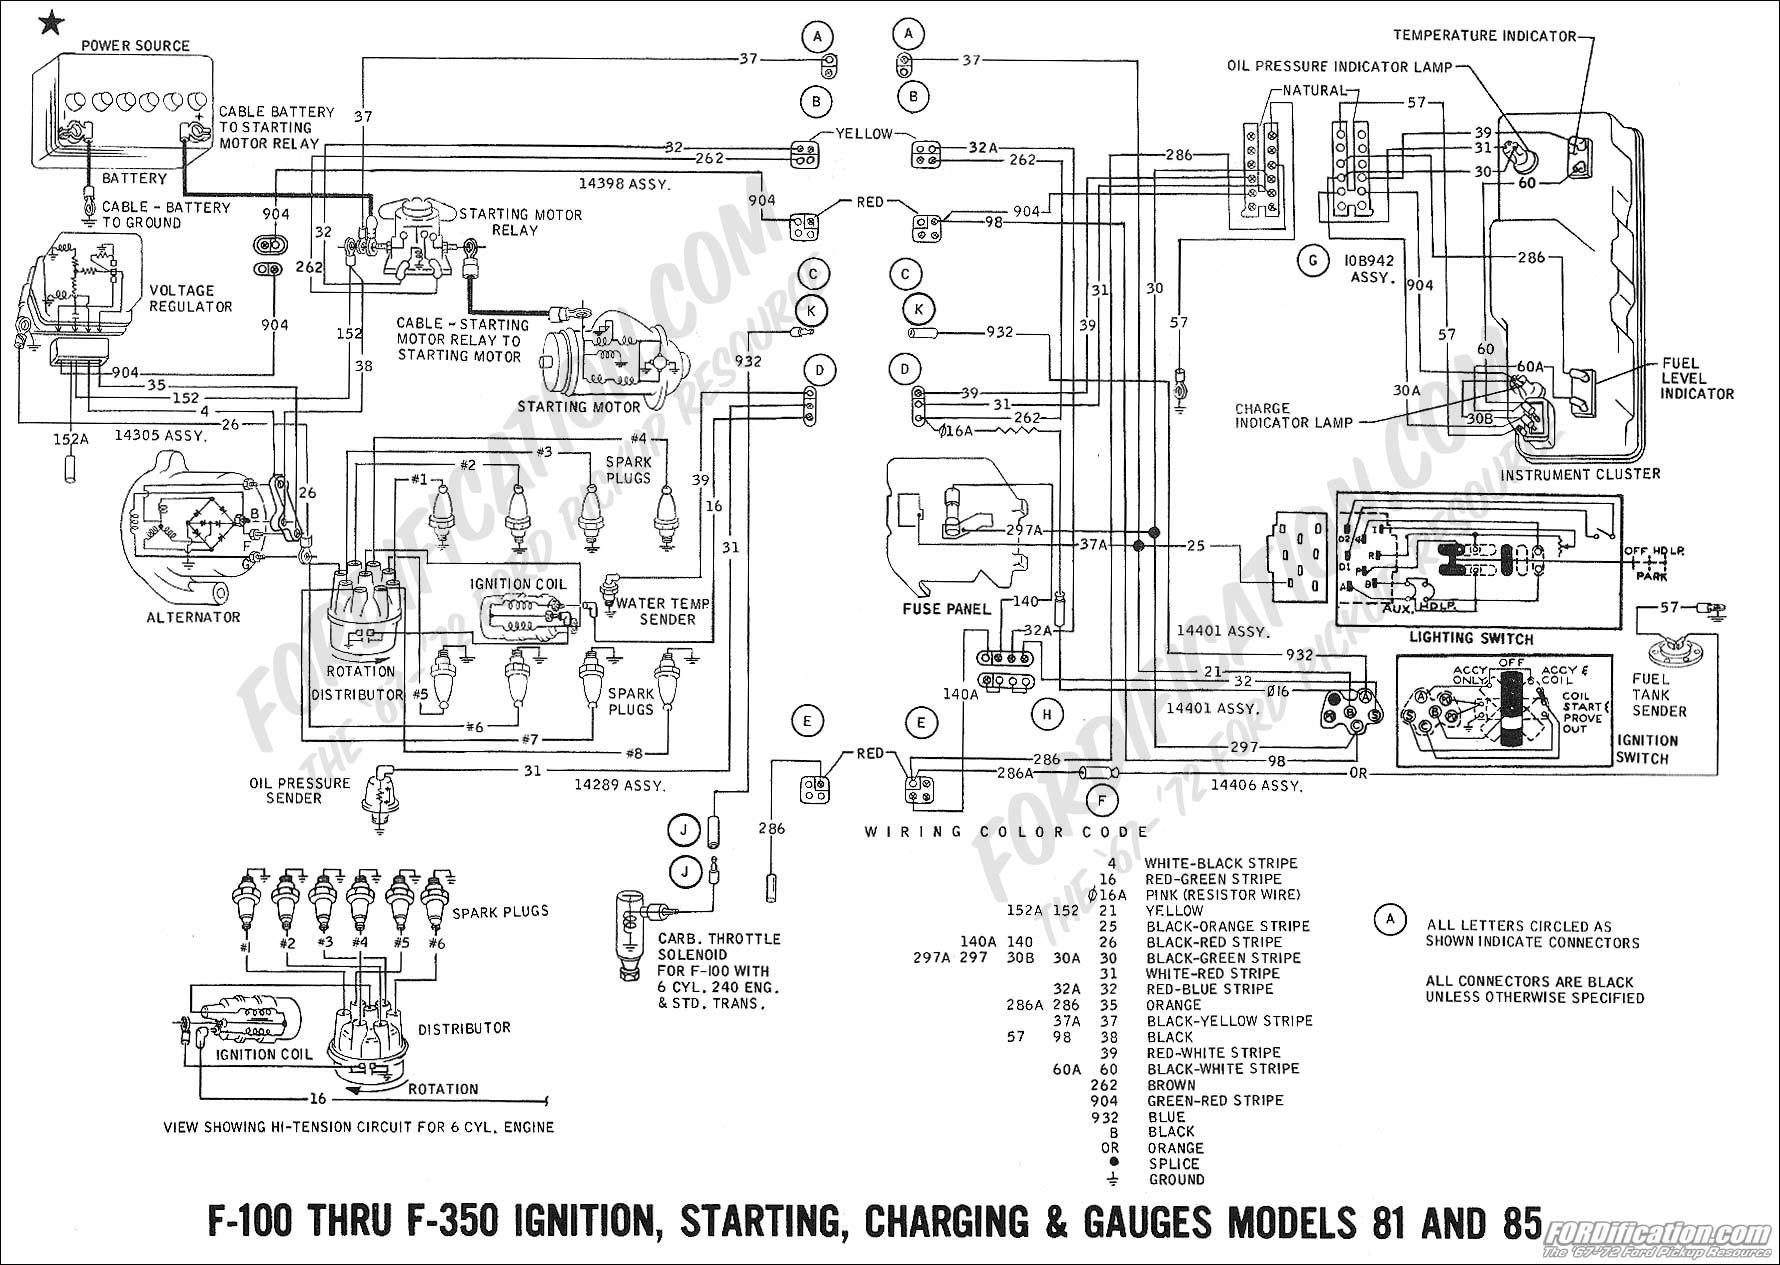 Ford Galaxy Wiring Diagram Download 35 Images 1989 F 250 80 1969charging2 11e20ef93683157eb5c91a9f1025e72be7c50ad3 Ranger Bronco Ii Electrical Diagrams At The Station